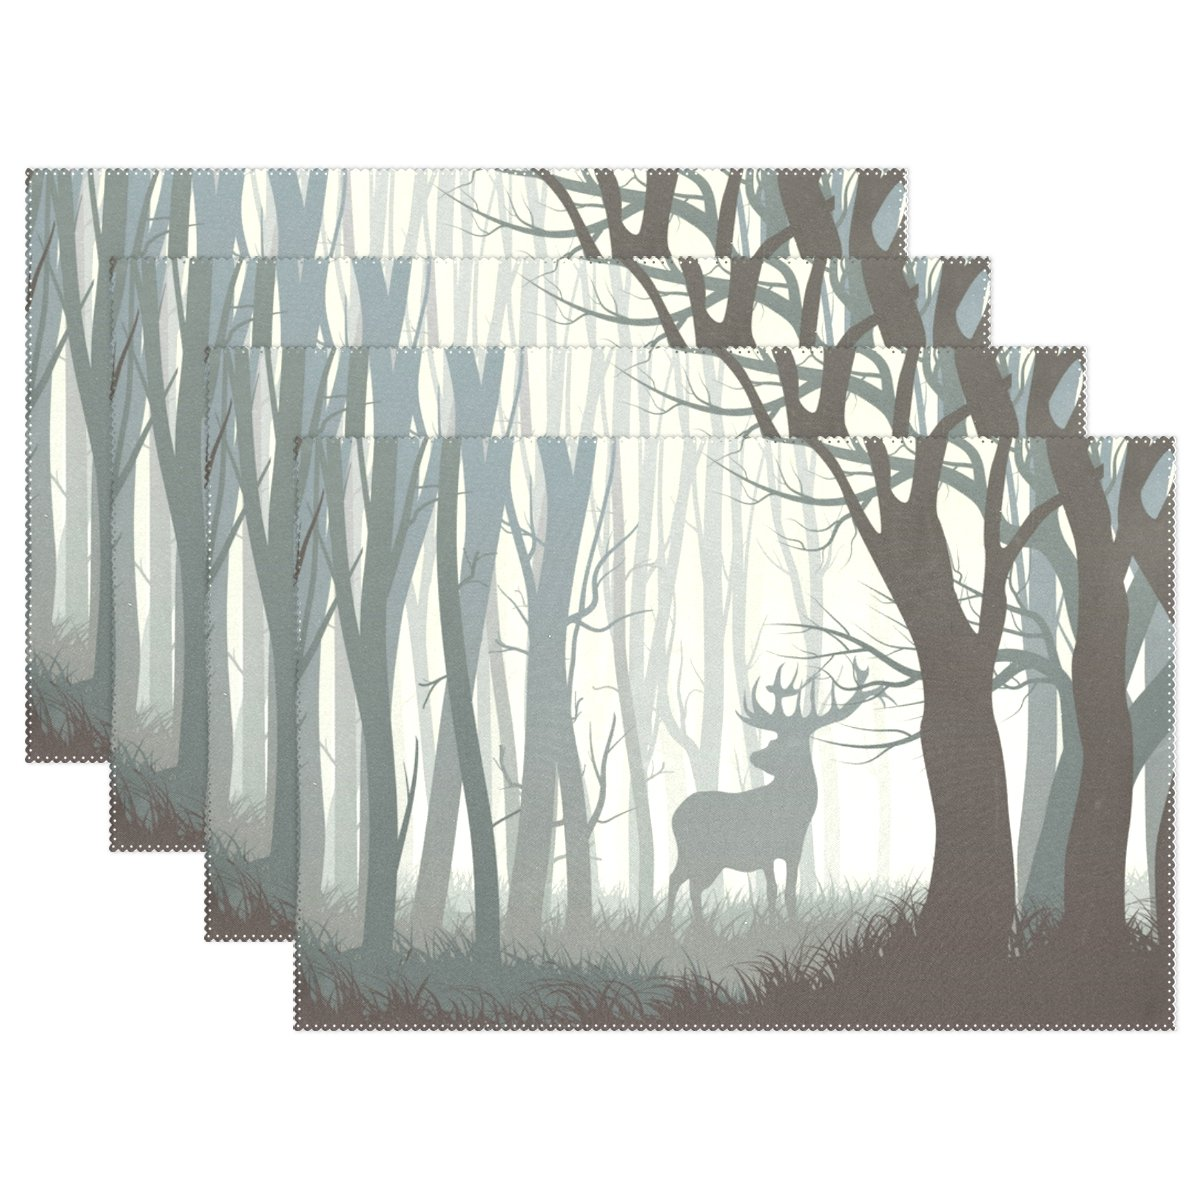 U LIFE抽象Elk Deer Forest Merry ChristmasプレートPlaceマットプレースマットプレイスマットトレイマット12 x 18インチ 4 placemats 4 placemats  B075V98PNS